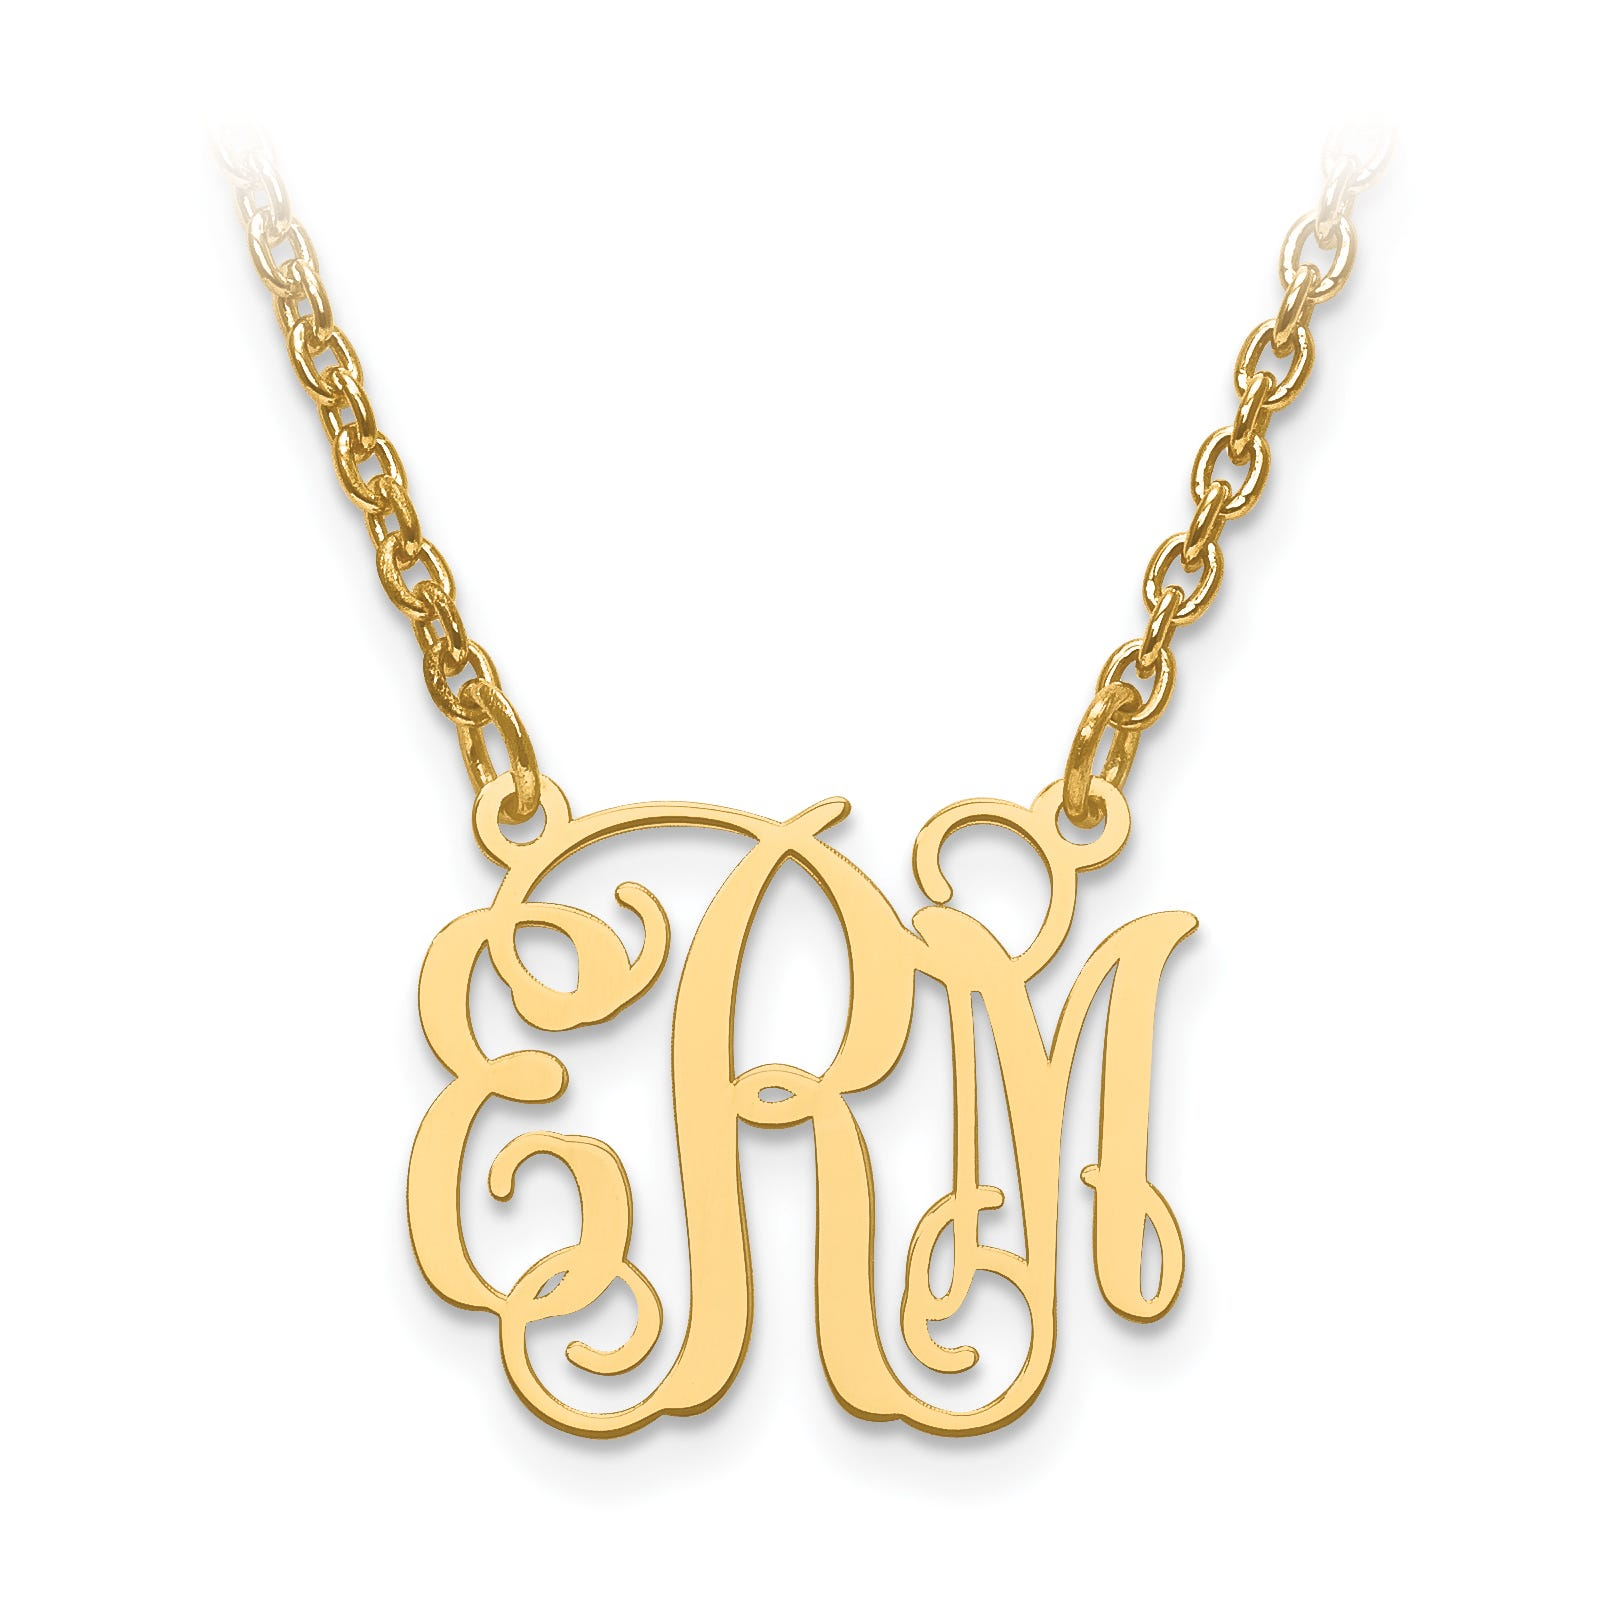 Laser High Polished 15.8x18.5 Monogram Plate in Gold Plated Sterling Silver (up to 3 letters)